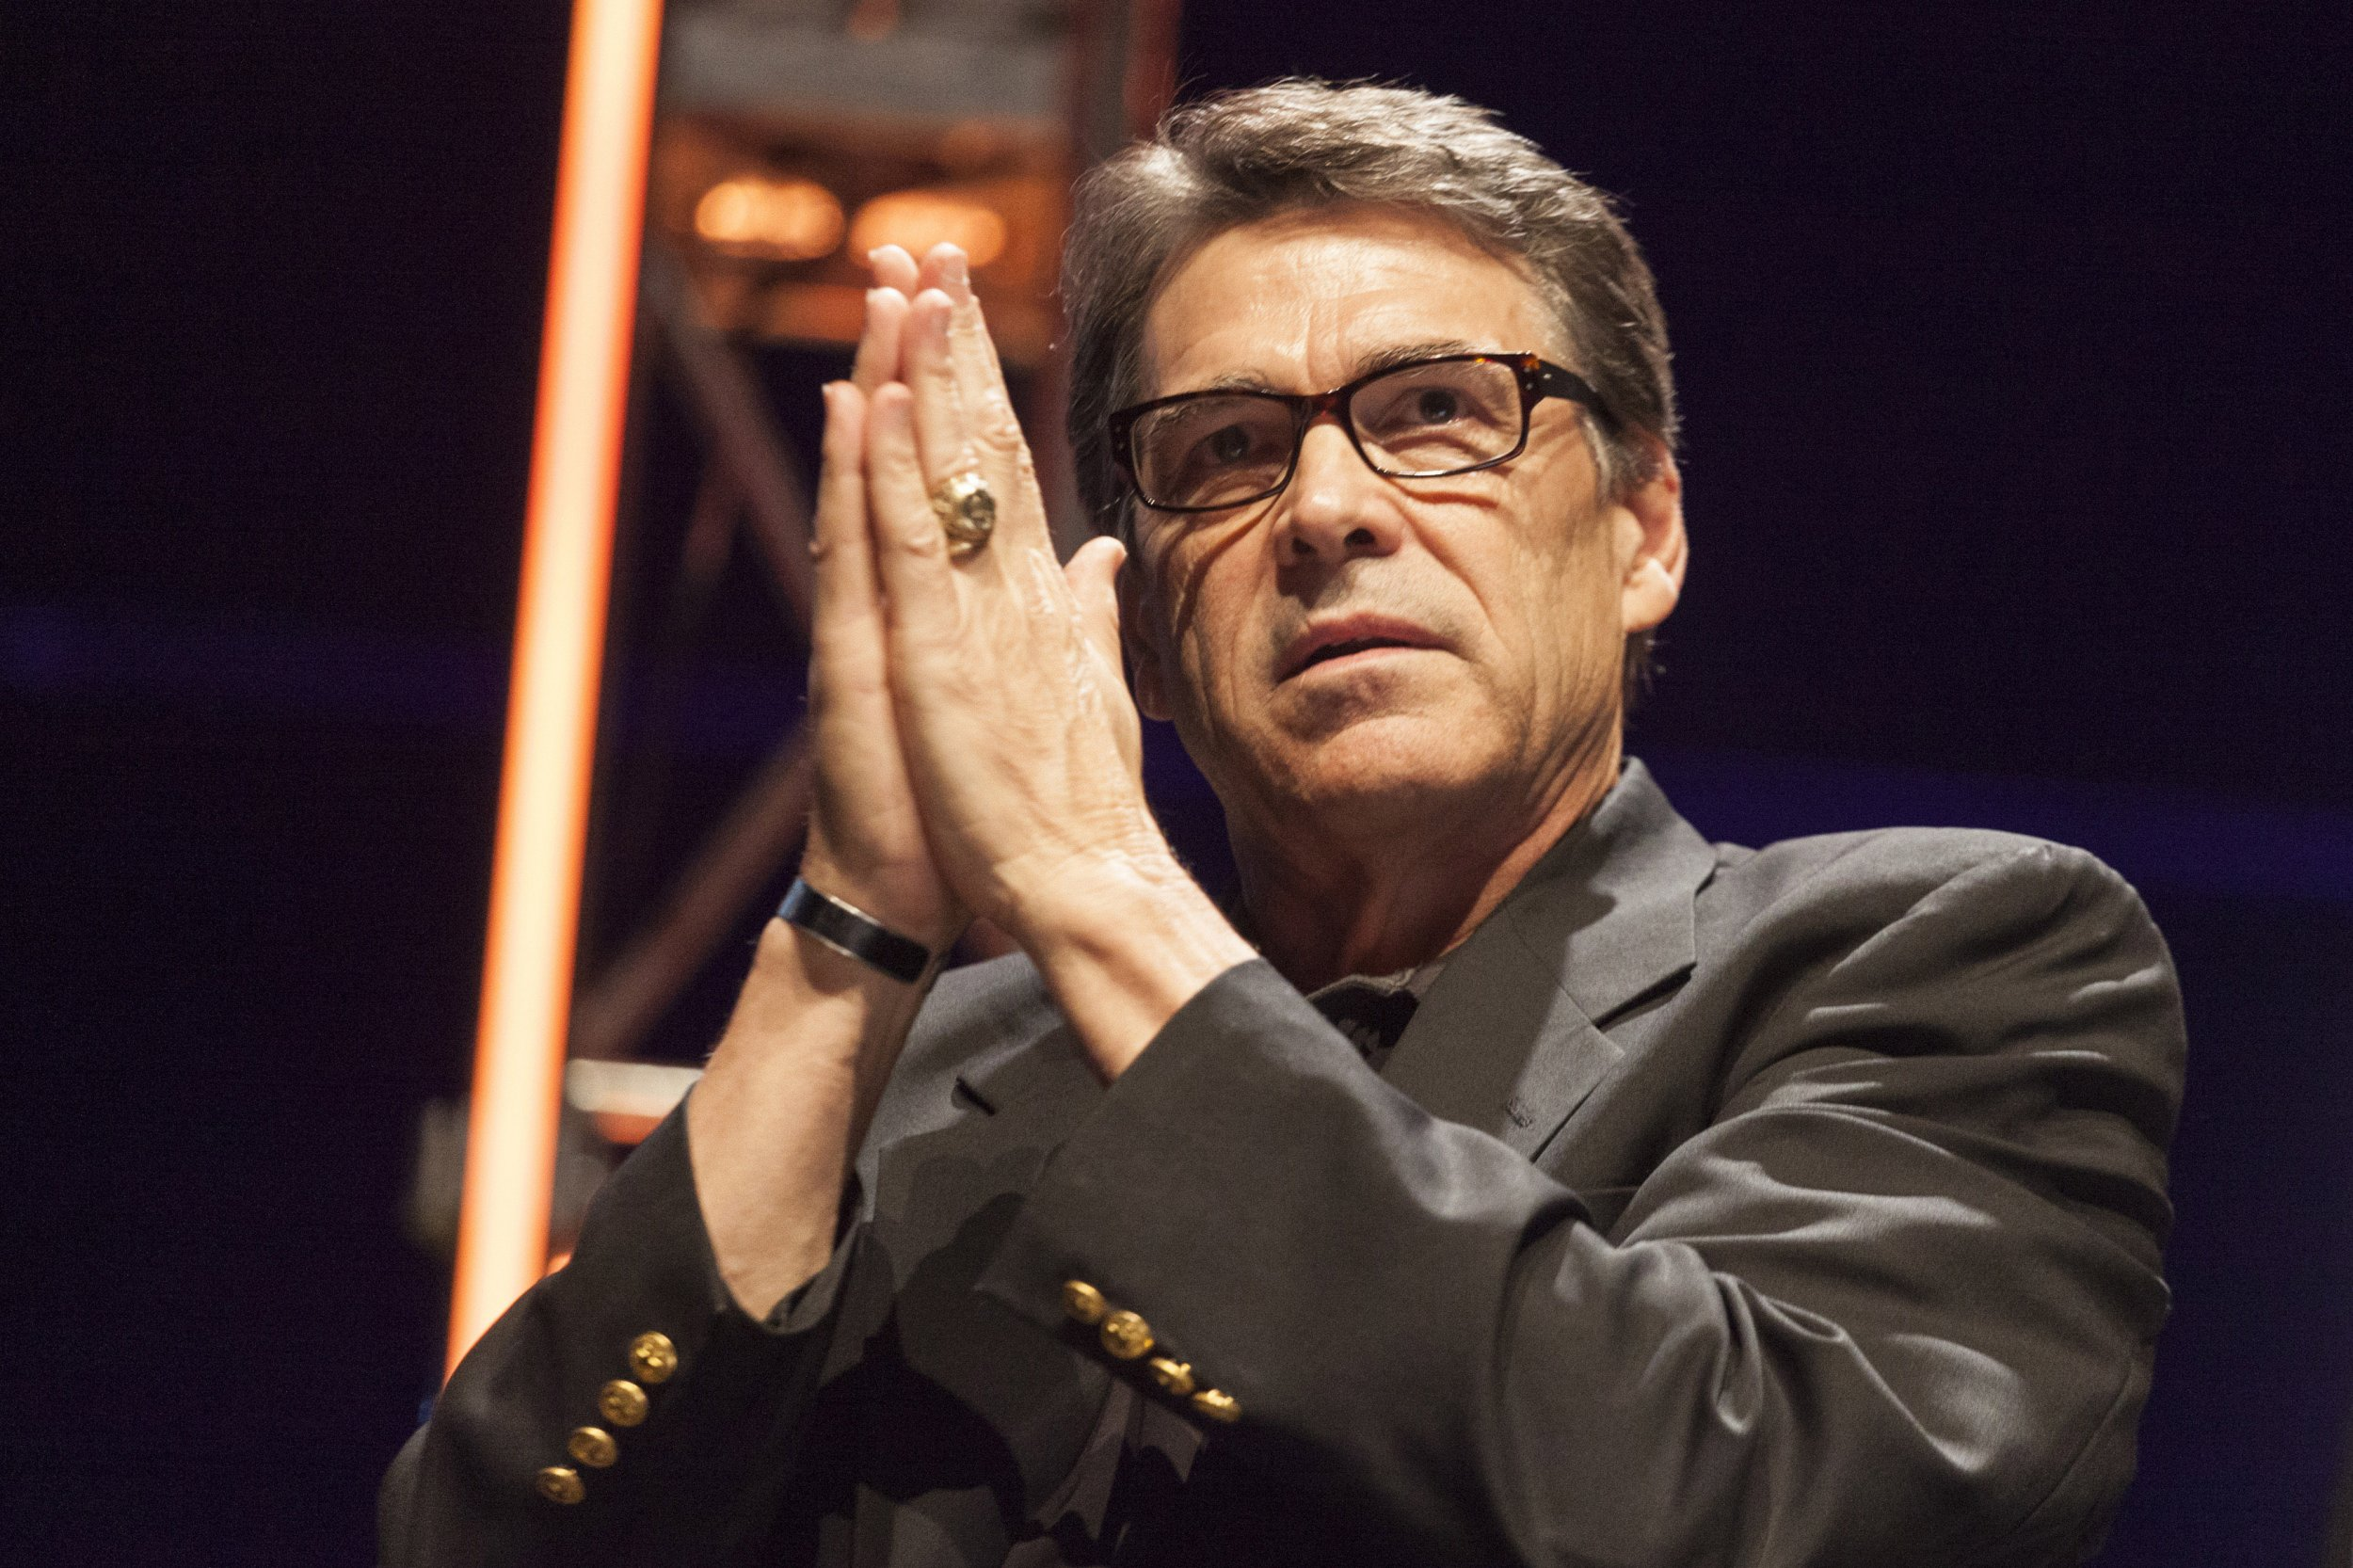 Rick Perry prayer hands